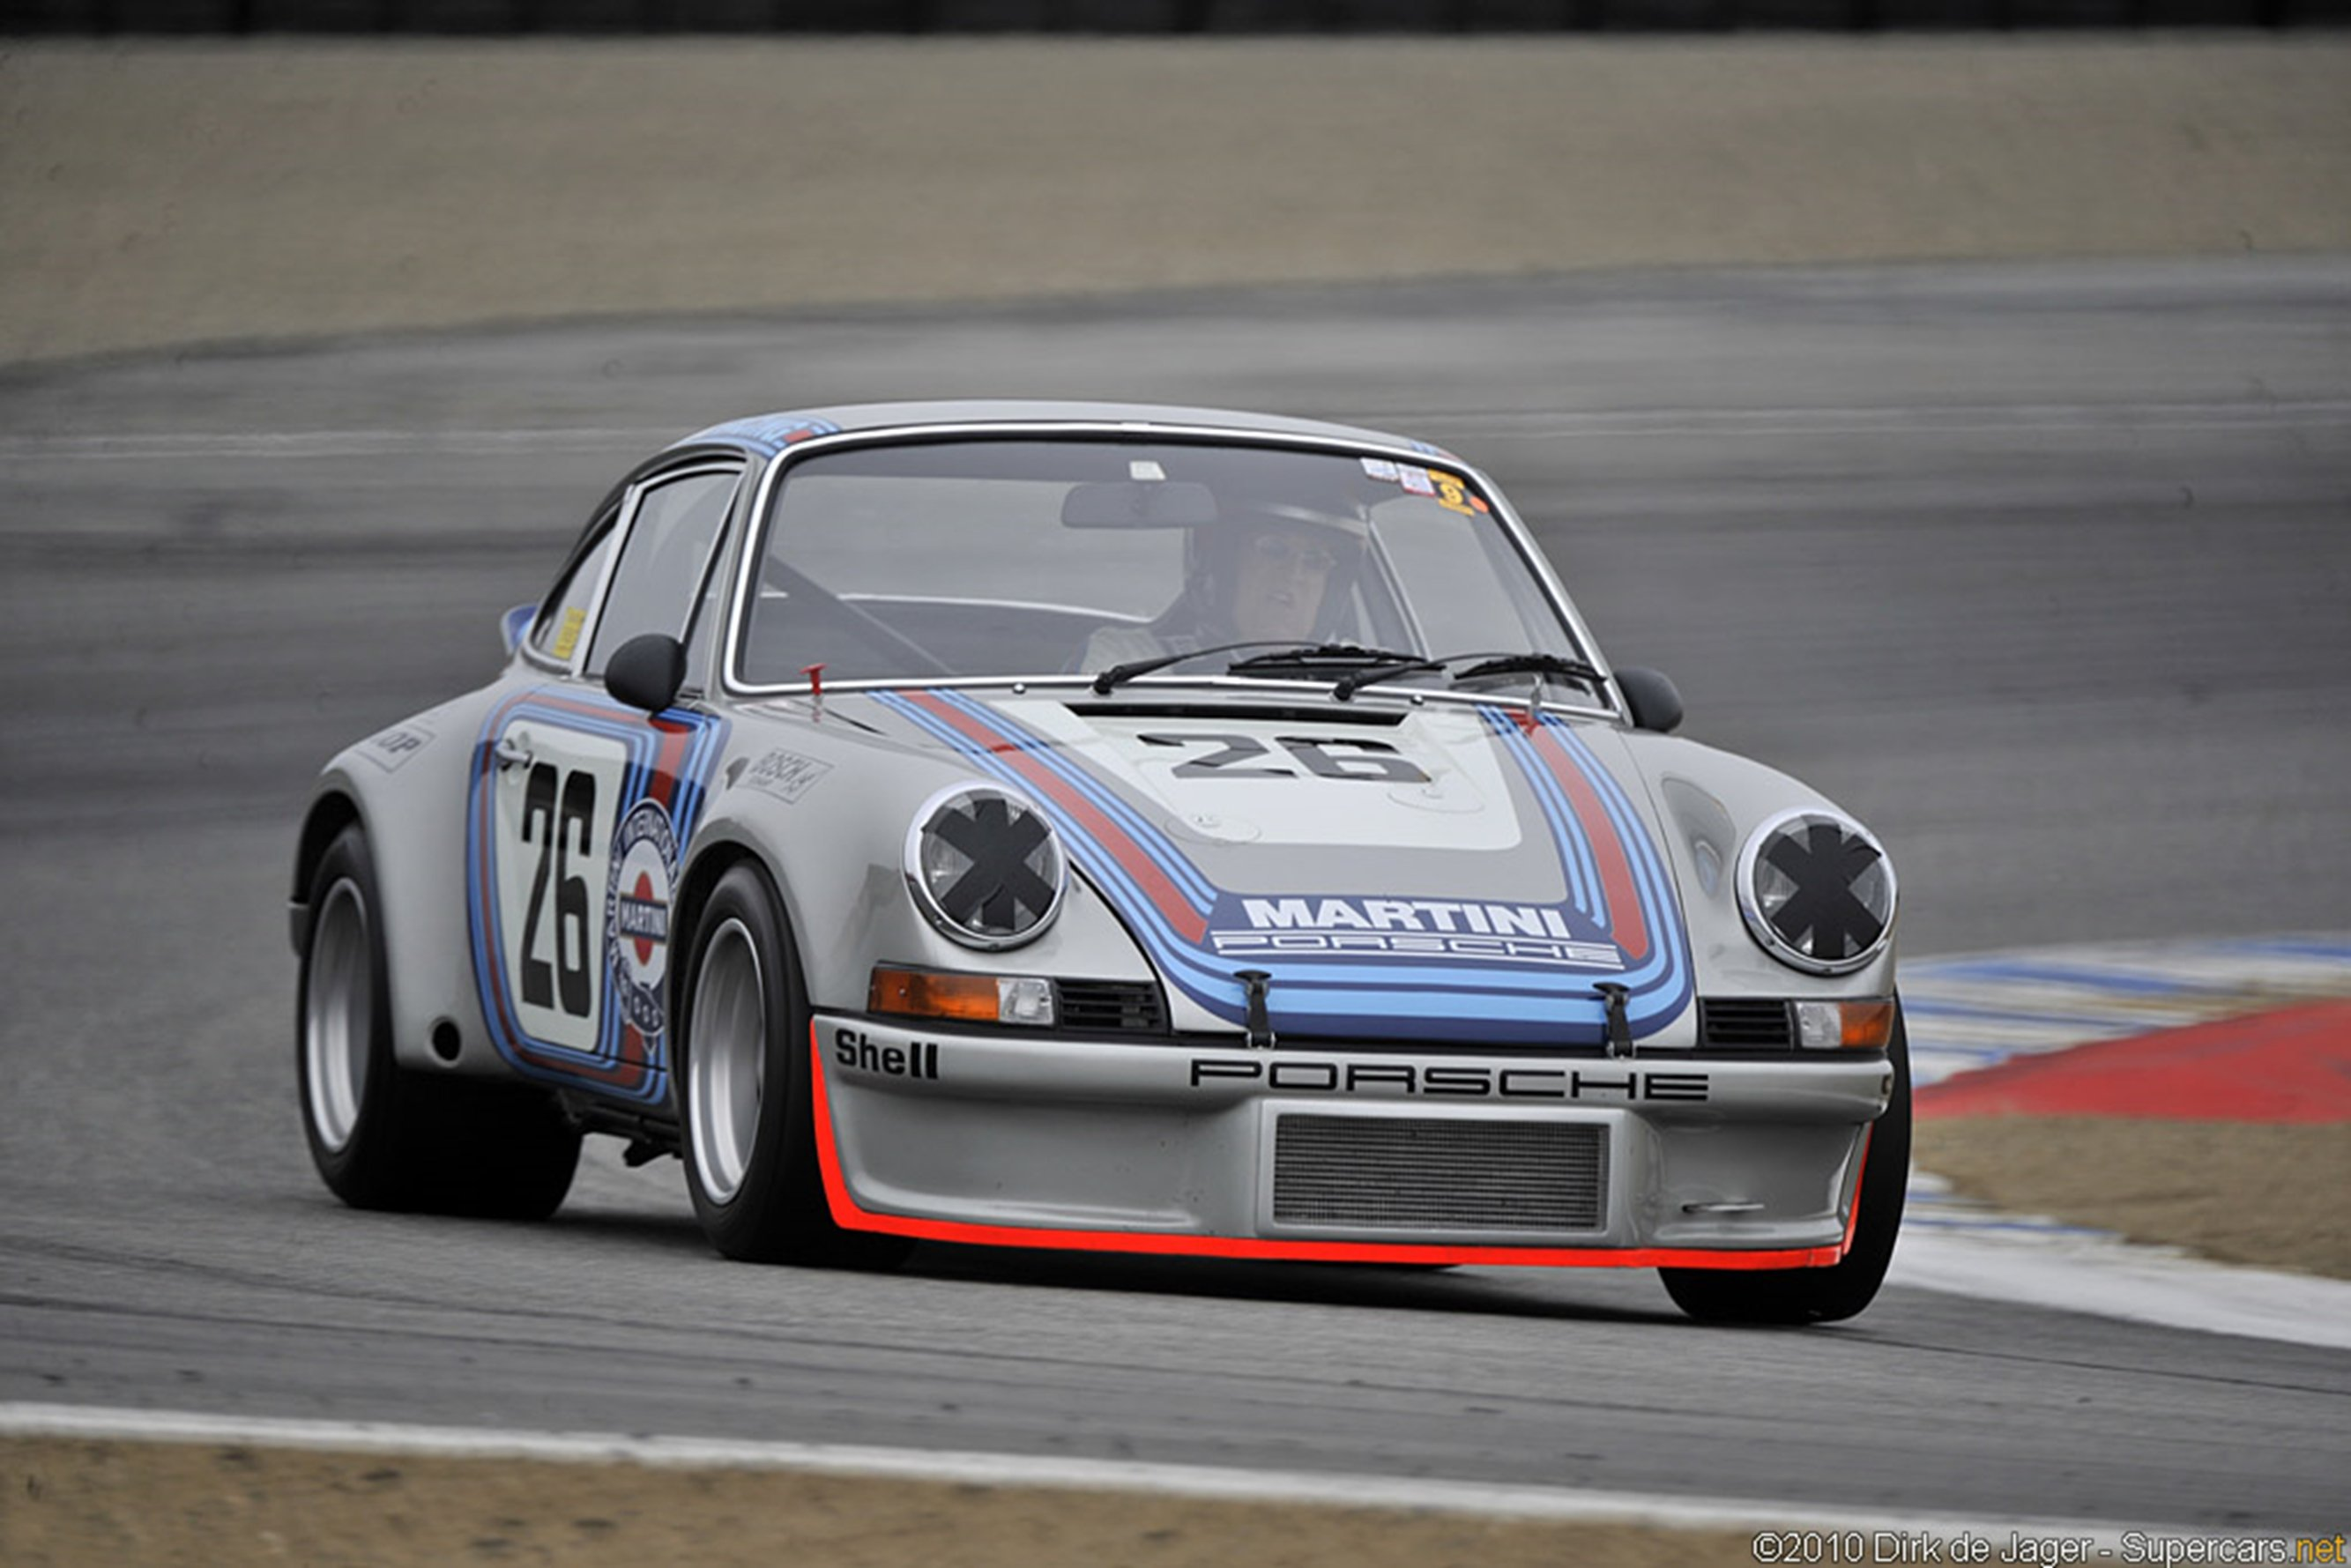 race car racing porsche classic martini wallpaper. Black Bedroom Furniture Sets. Home Design Ideas